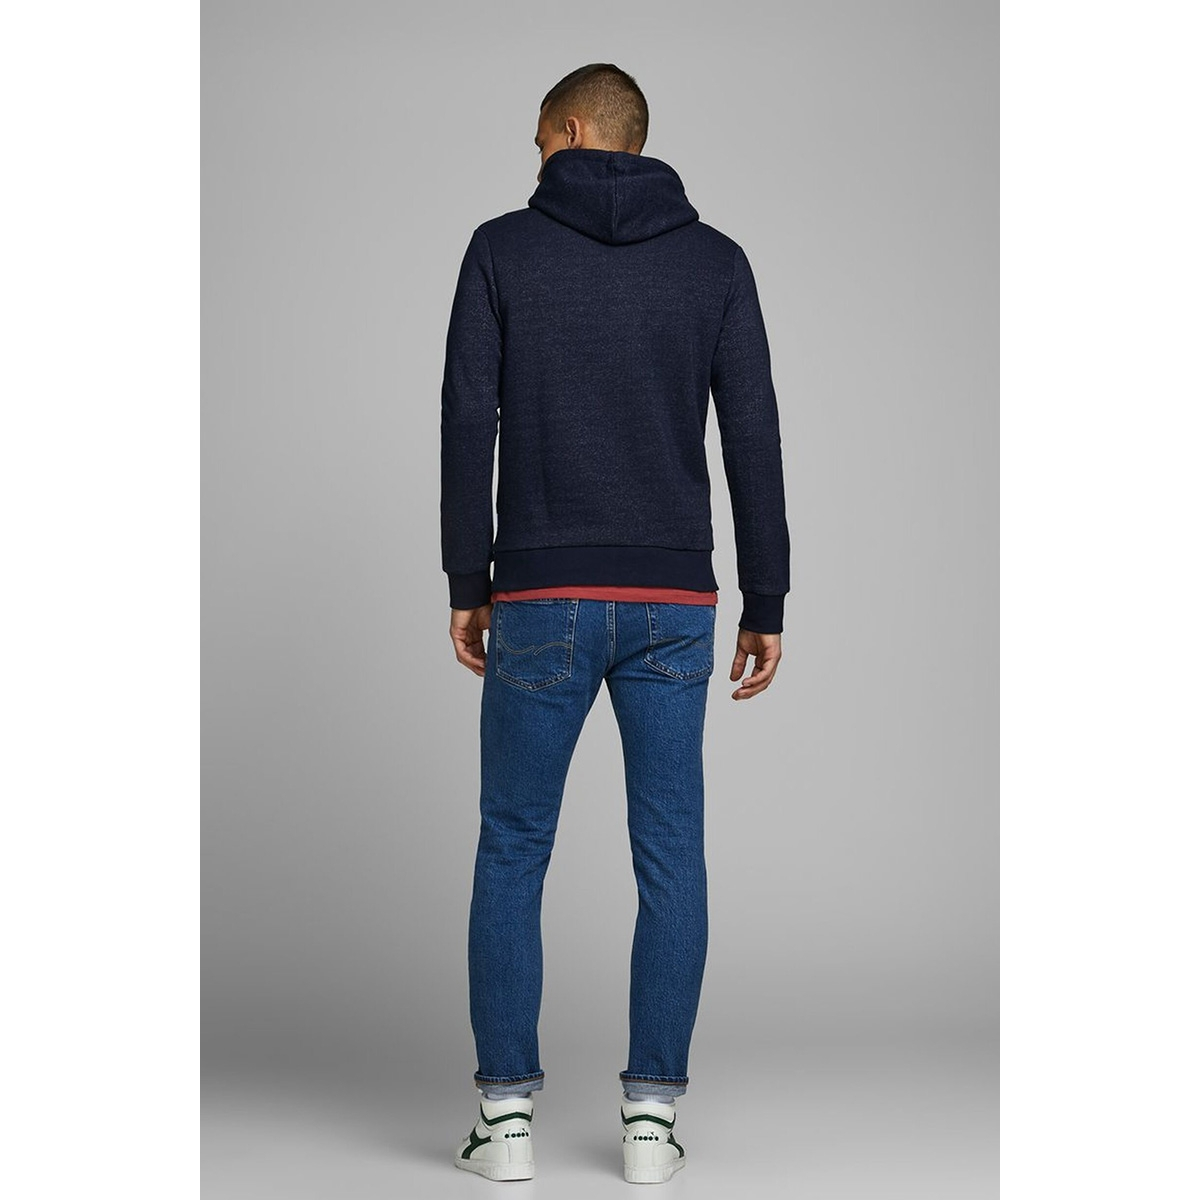 jorbrandon sweat hood 12162184 jack & jones sweater navy blazer